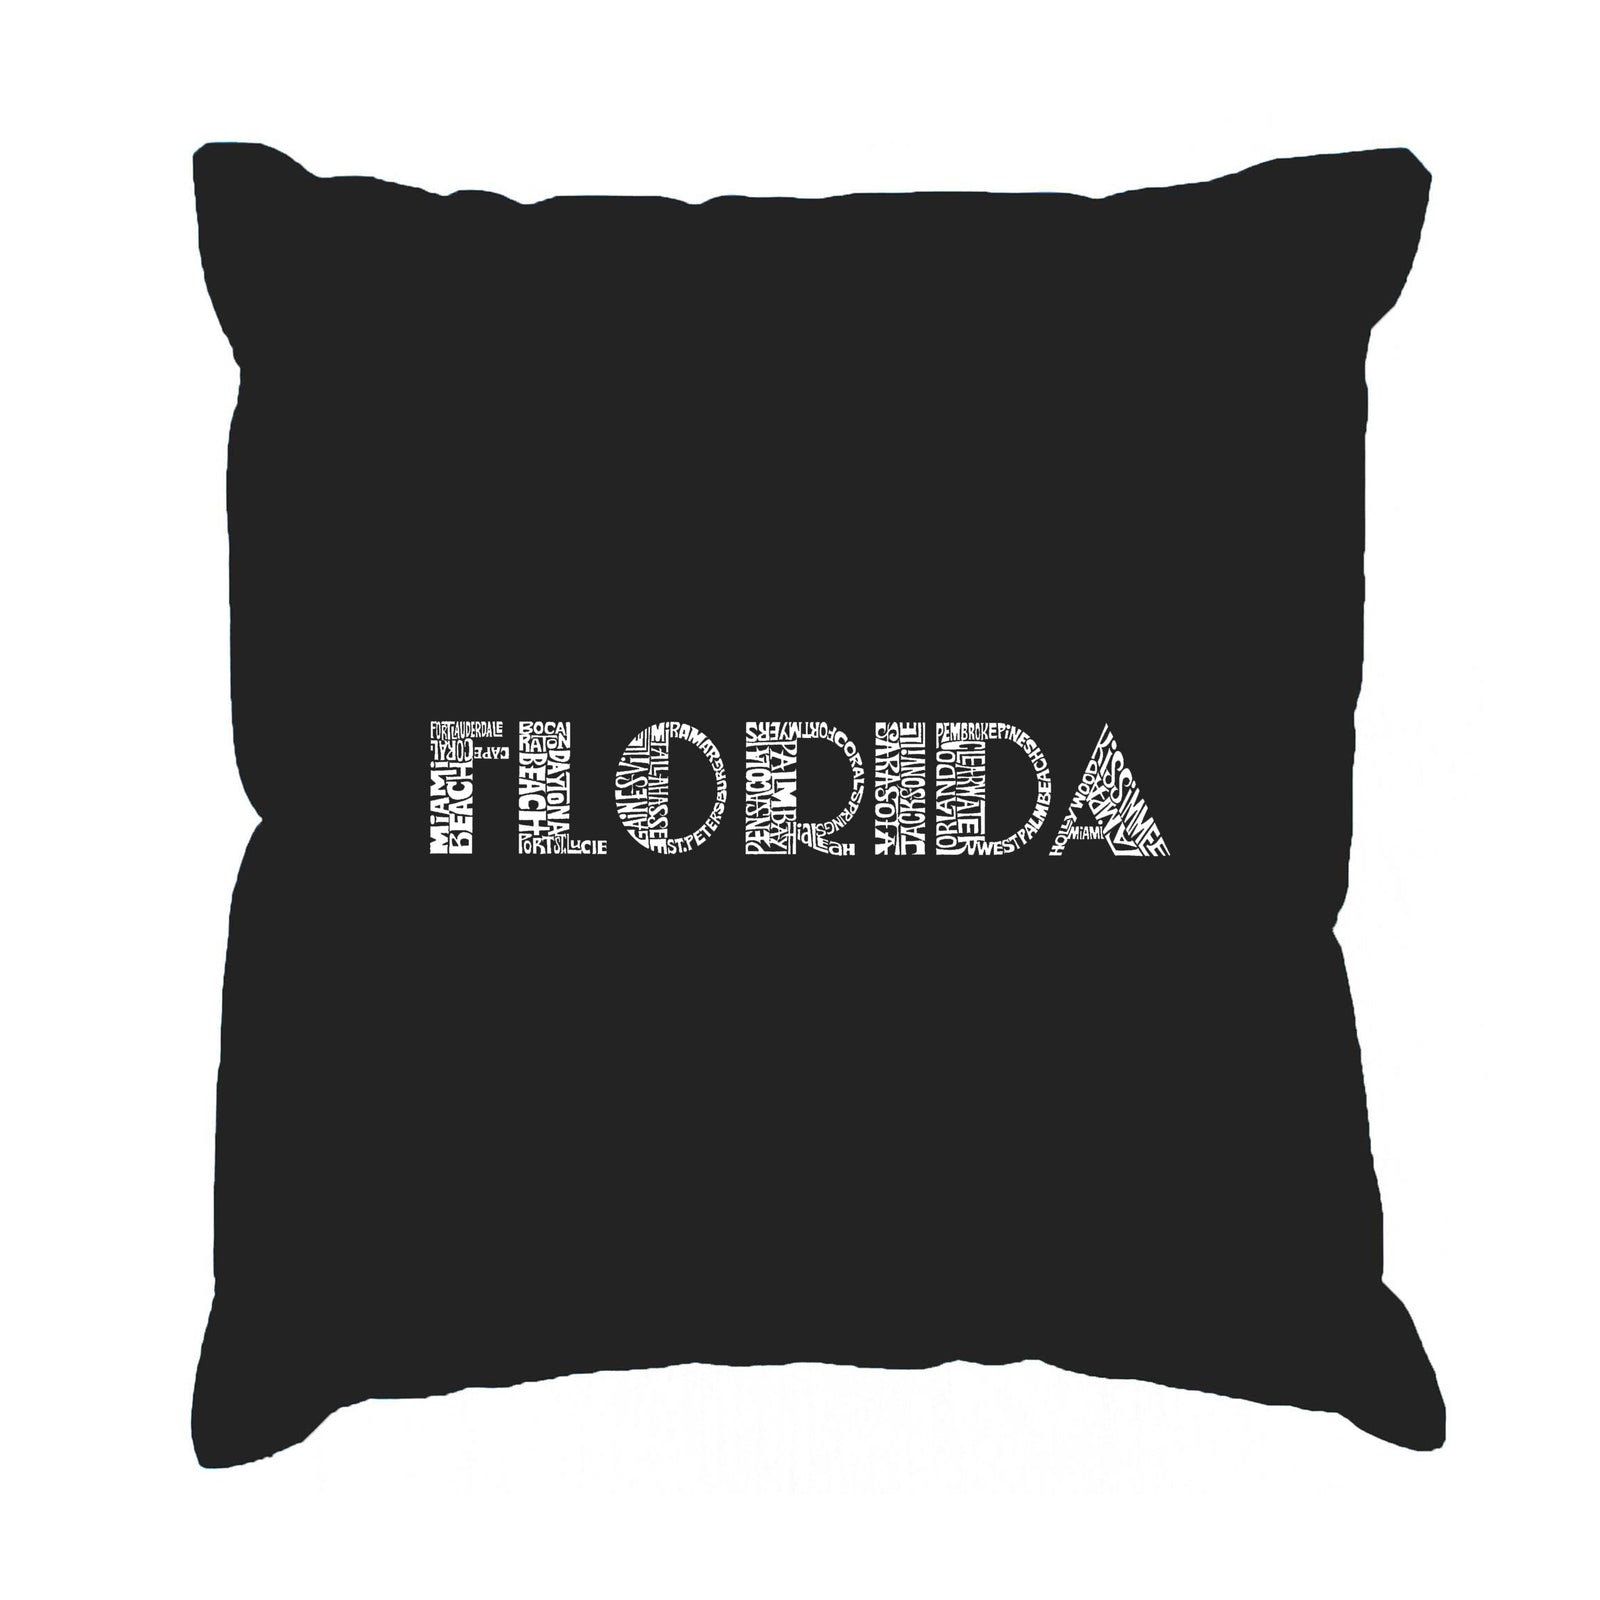 Throw Pillow Cover - POPULAR CITIES IN FLORIDA